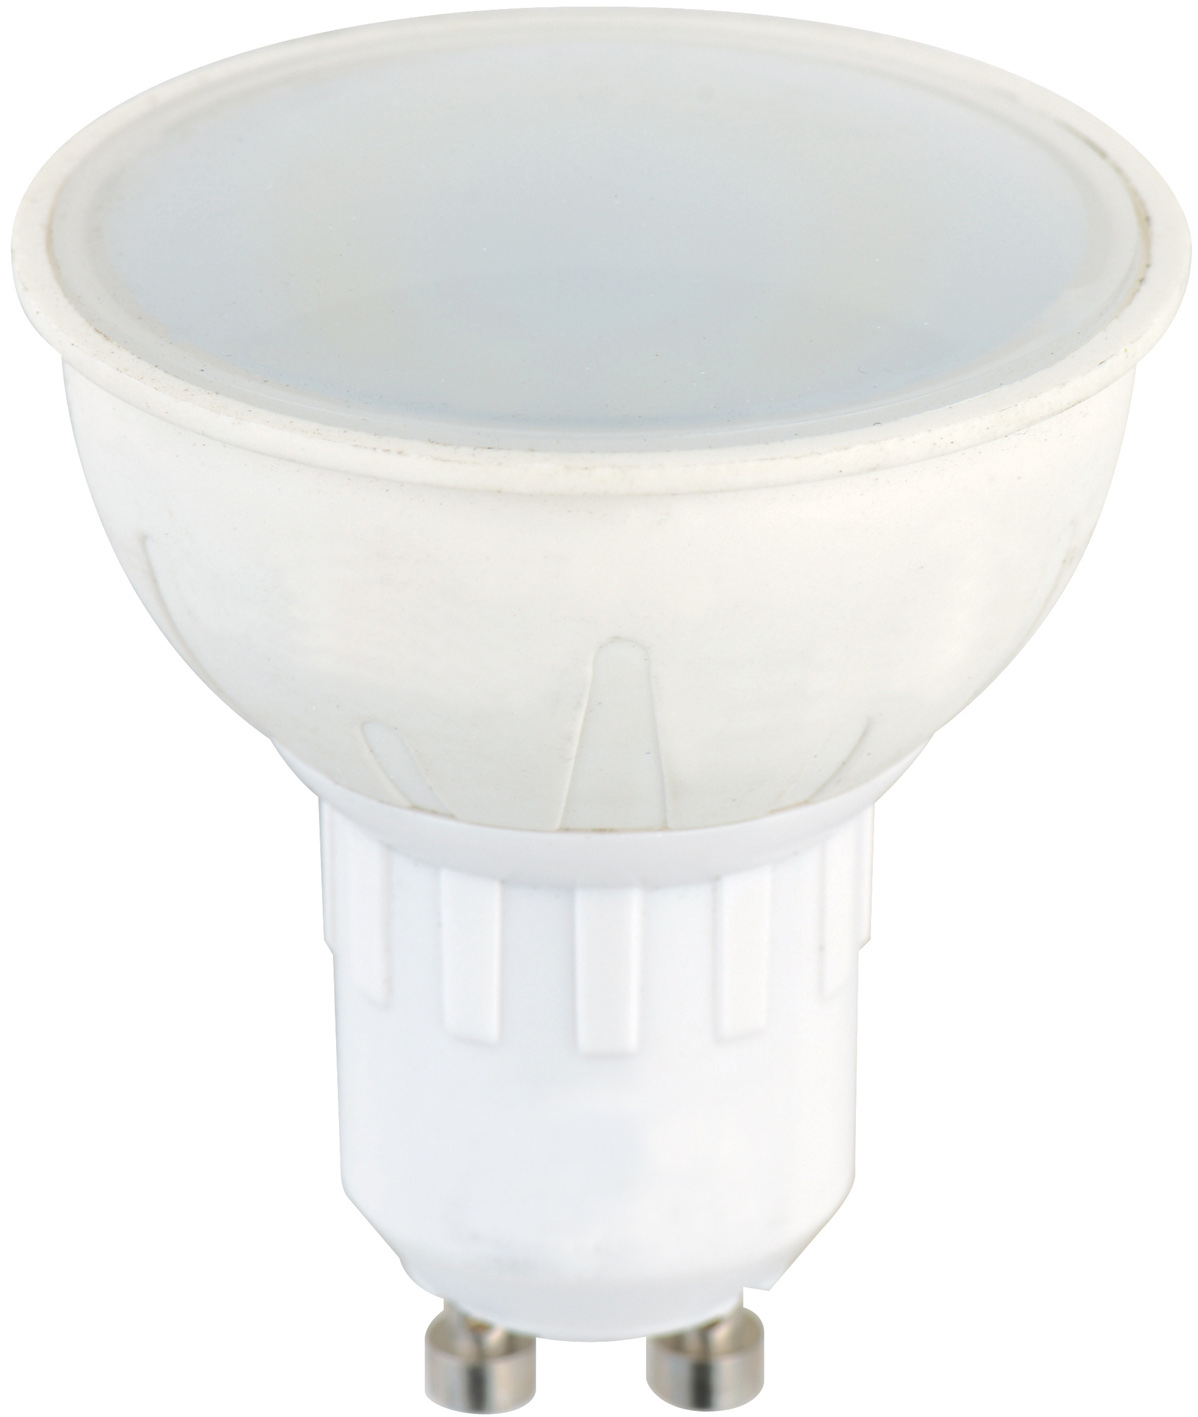 High quality led spotlight GU10 6w TUV-GS, CE, RoHs